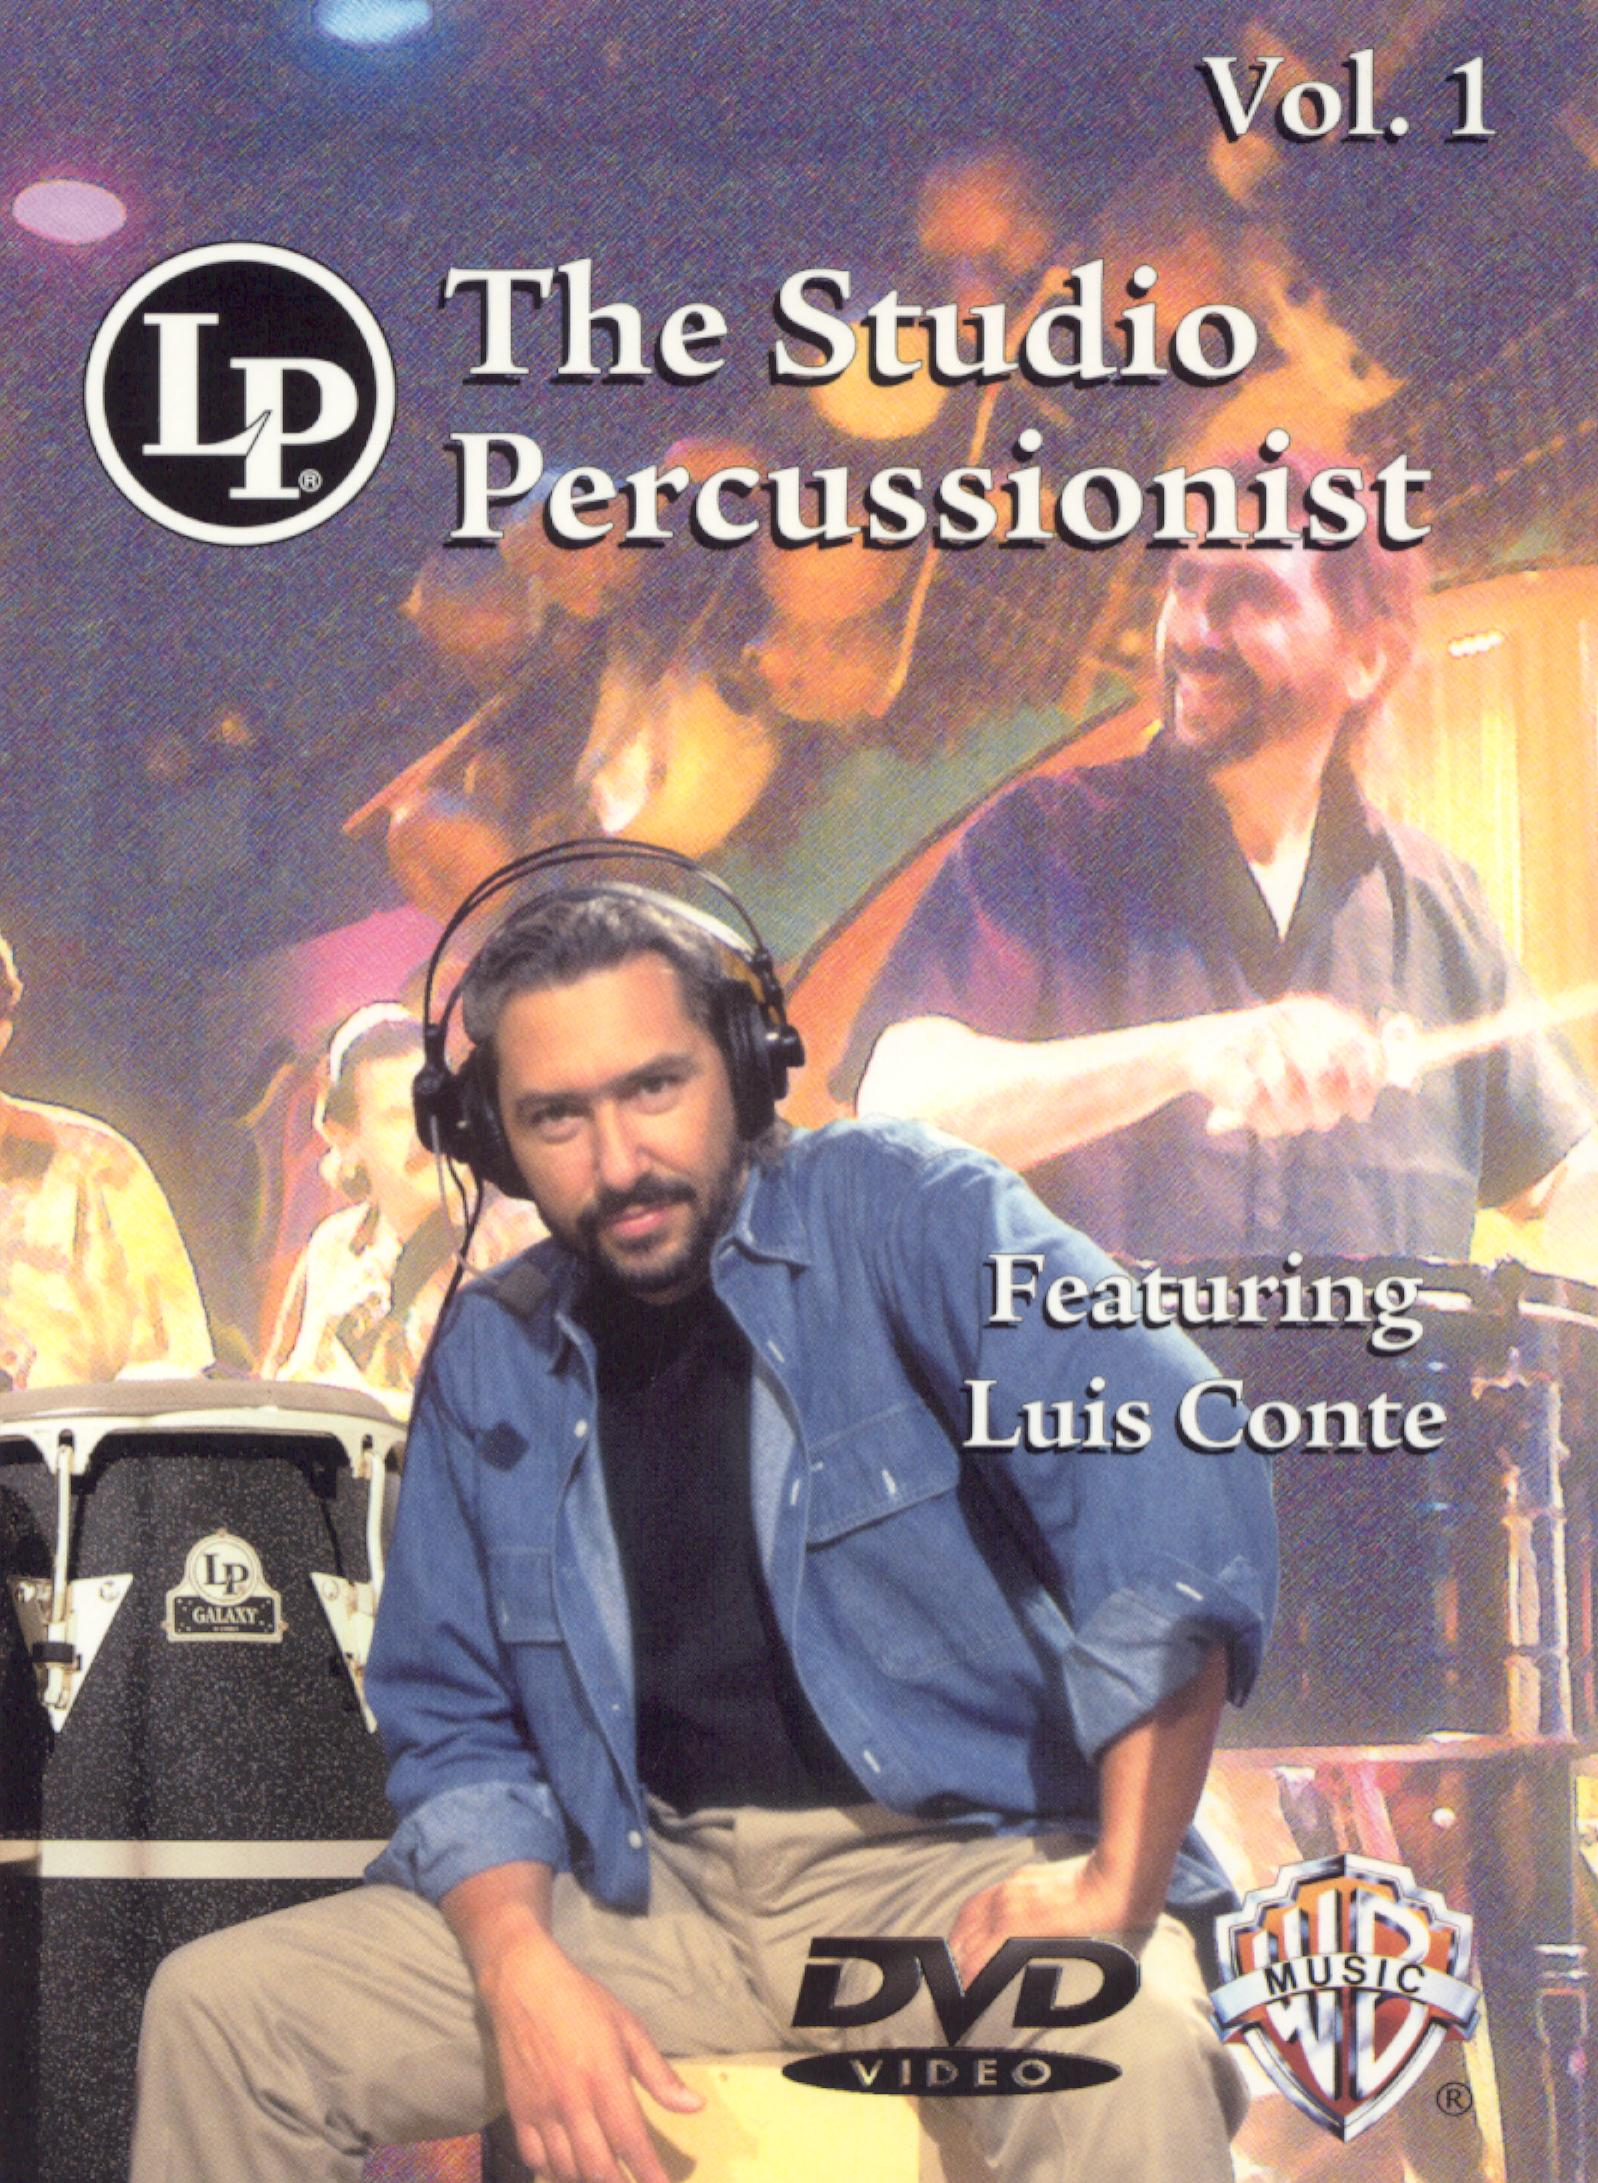 The Studio Percussionist, Vol. 1